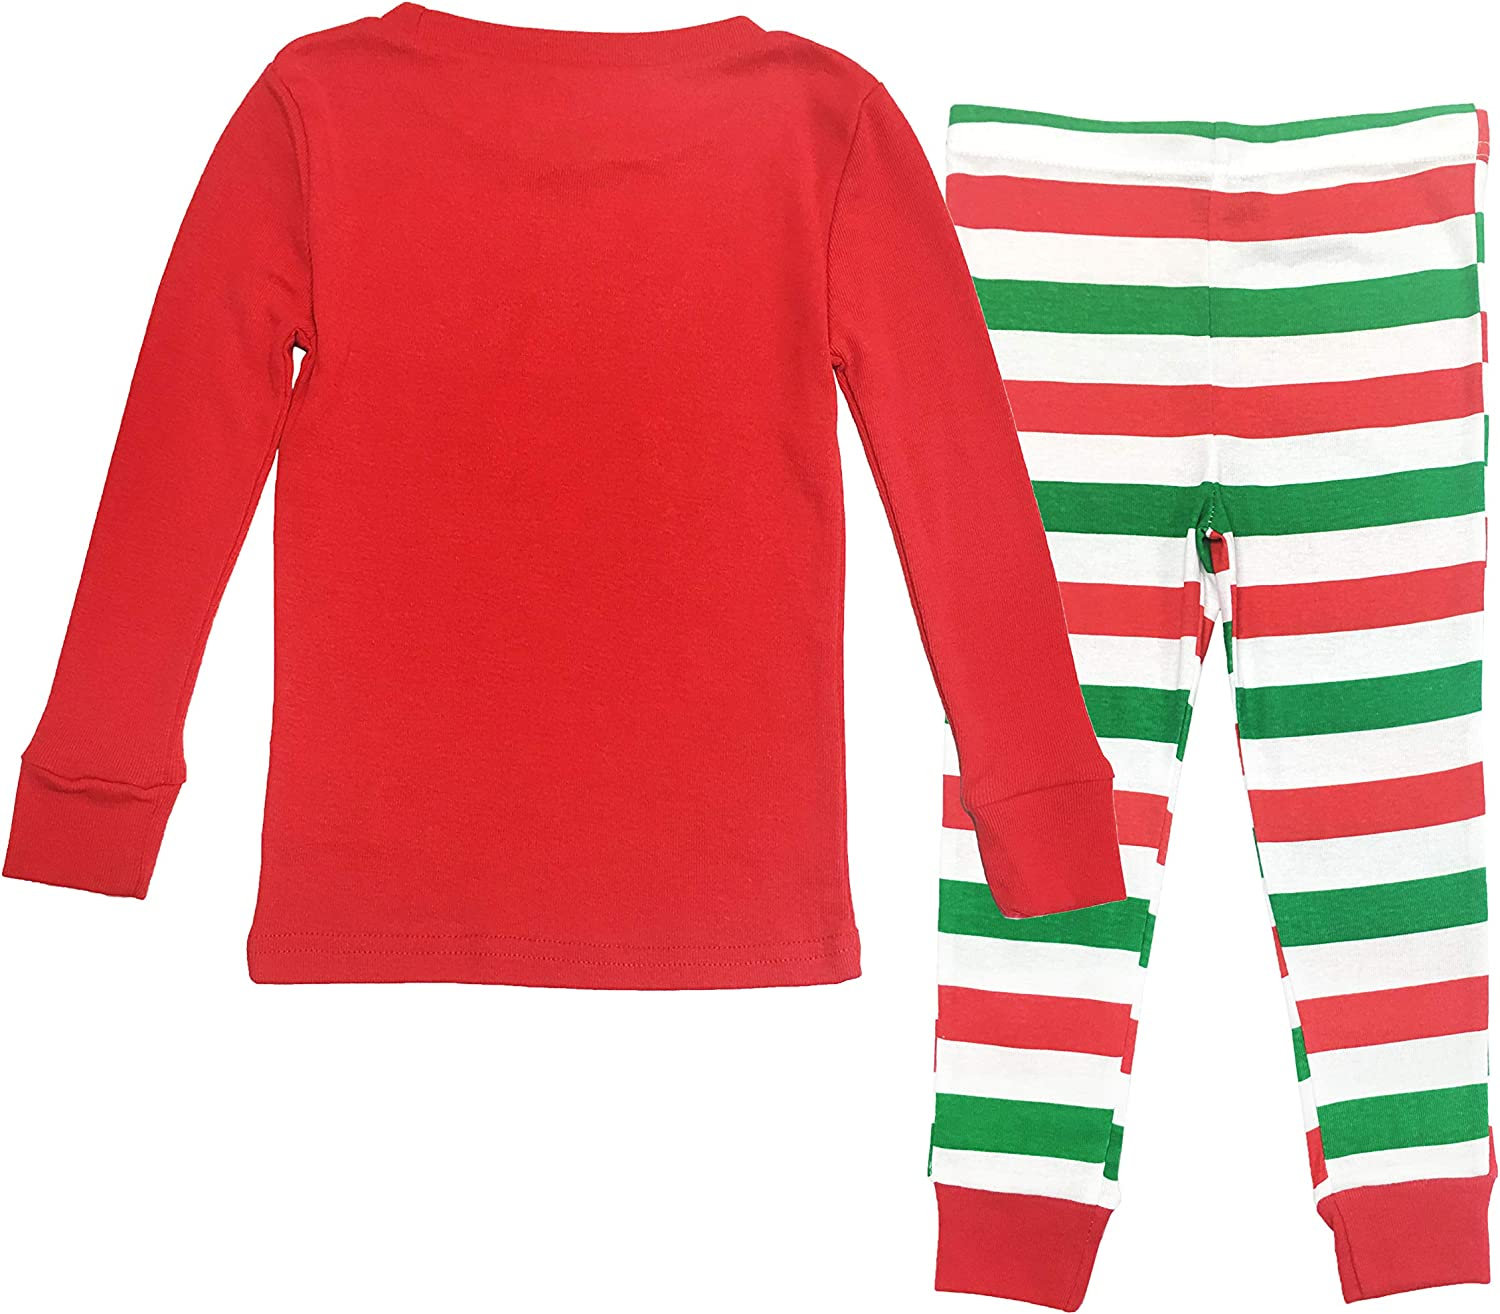 Dr. Seuss Grinch Merry Grinchmas! Matching Family Adult And Kids Pajama Set Outfits : Clothing, Shoes & Jewelry